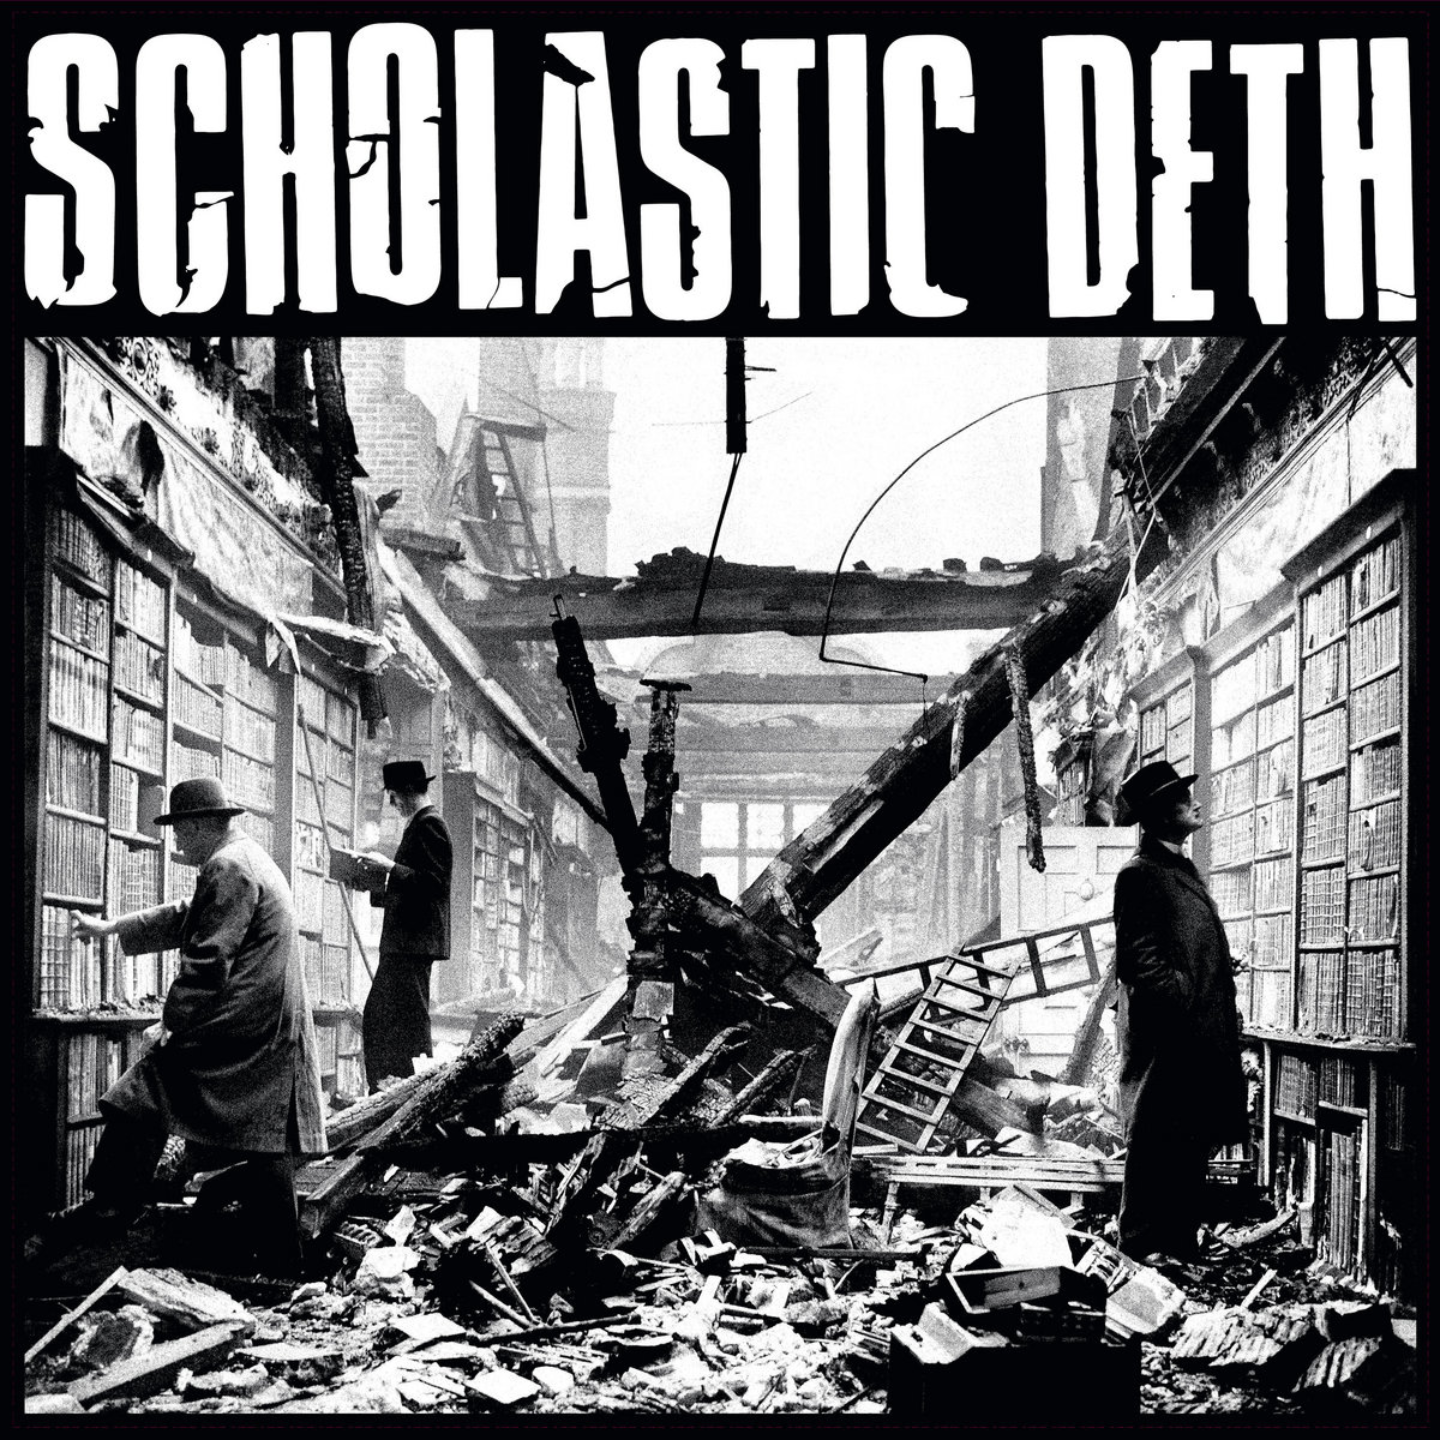 SCHOLASTIC DETH - Bookstore Core 2000-2002 LP